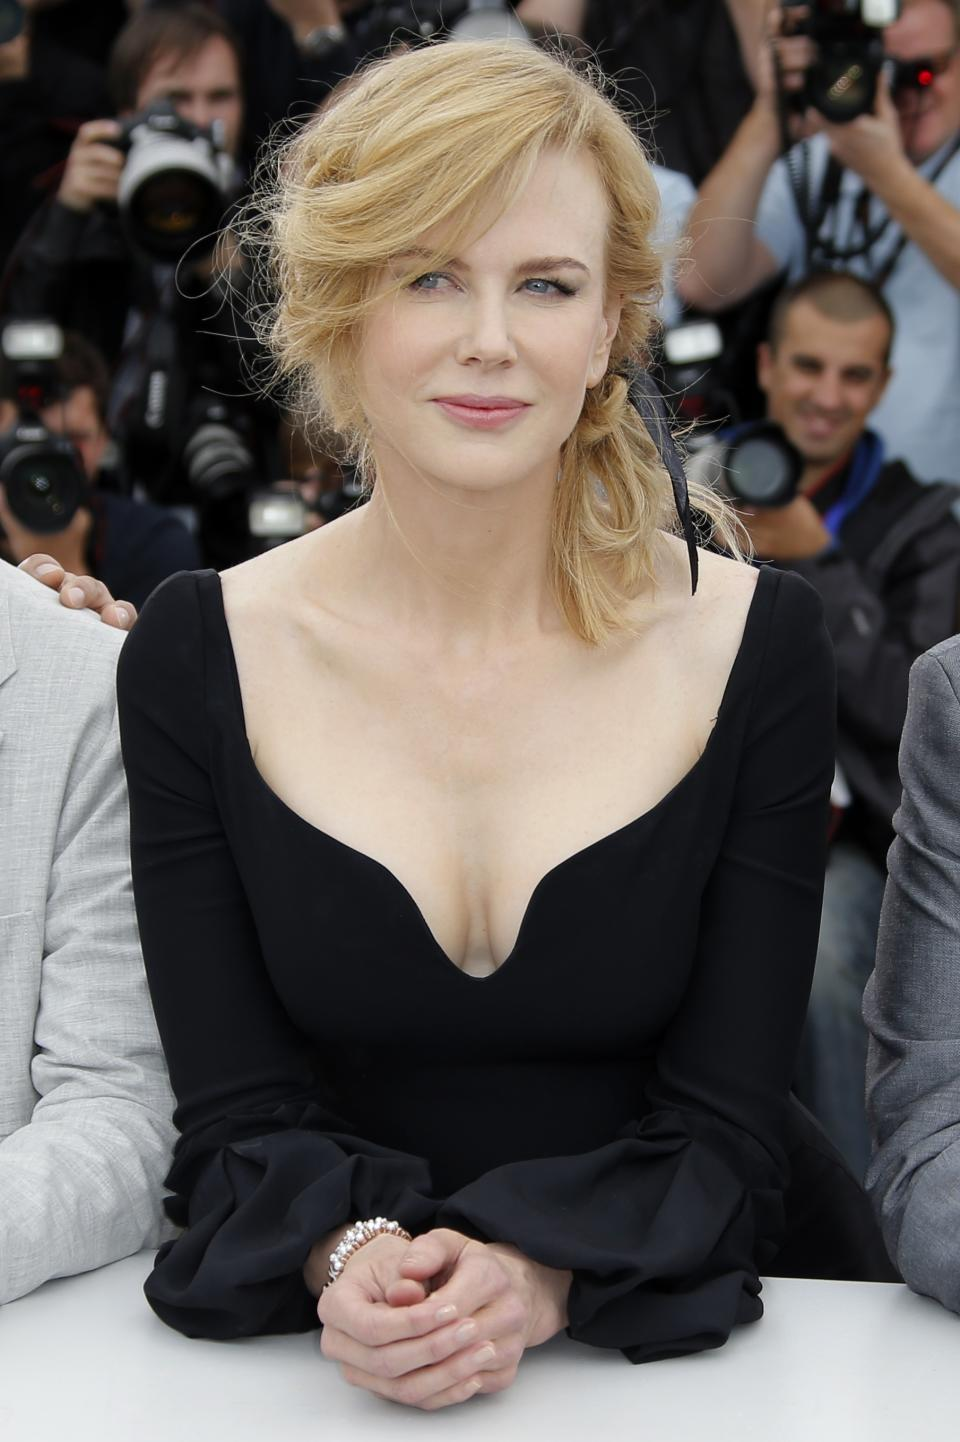 Jury member Nicole Kidman poses for photographers during a photo call for the jury at the 66th international film festival, in Cannes, southern France, Wednesday, May 15, 2013. (AP Photo/Francois Mori)